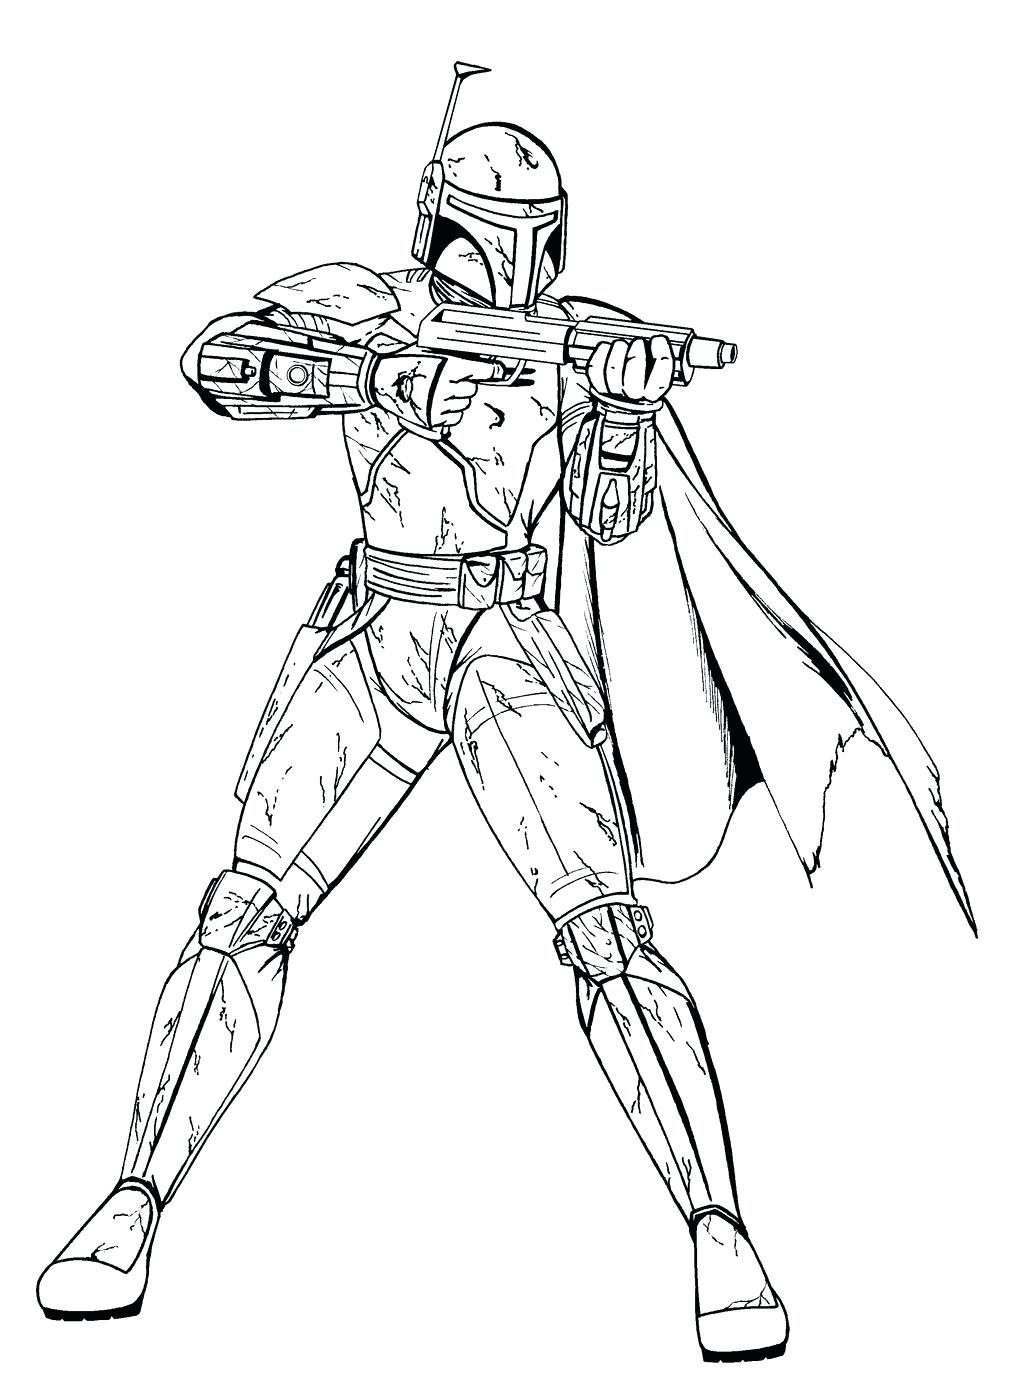 Coloring Pages Star Wars Coloring Page Pages the force Awakens